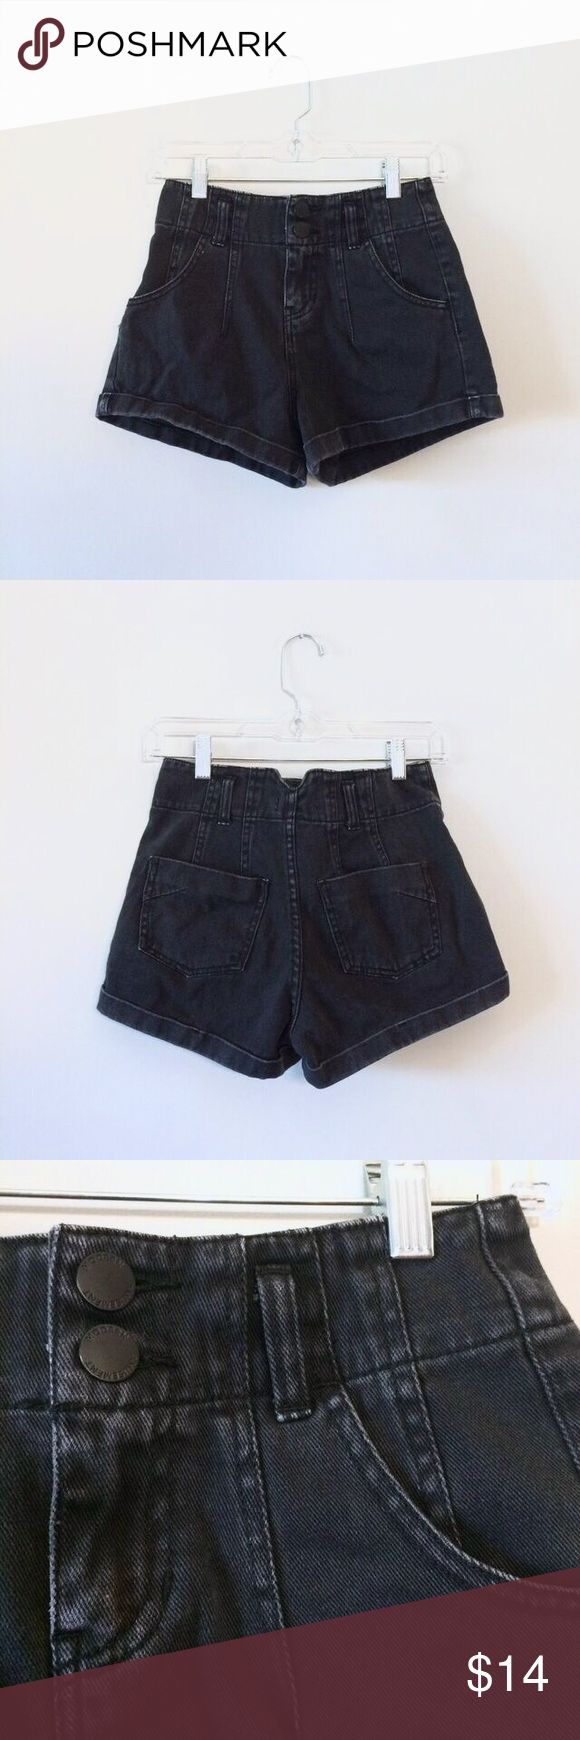 🌵 UO highrise denim shorts ❂ Hello! I'm trying to clear my closet of items I do not use. The reason I am selling is because unfortunately these shorts aren't my size. (I figured I could sew them, but to no avail) ❂ The brand is called Modern Amusement, sold in UO stores. The unique stitching resembles a contemporary, yet quaint appearance in my opinion. Urban Outfitters Shorts Jean Shorts